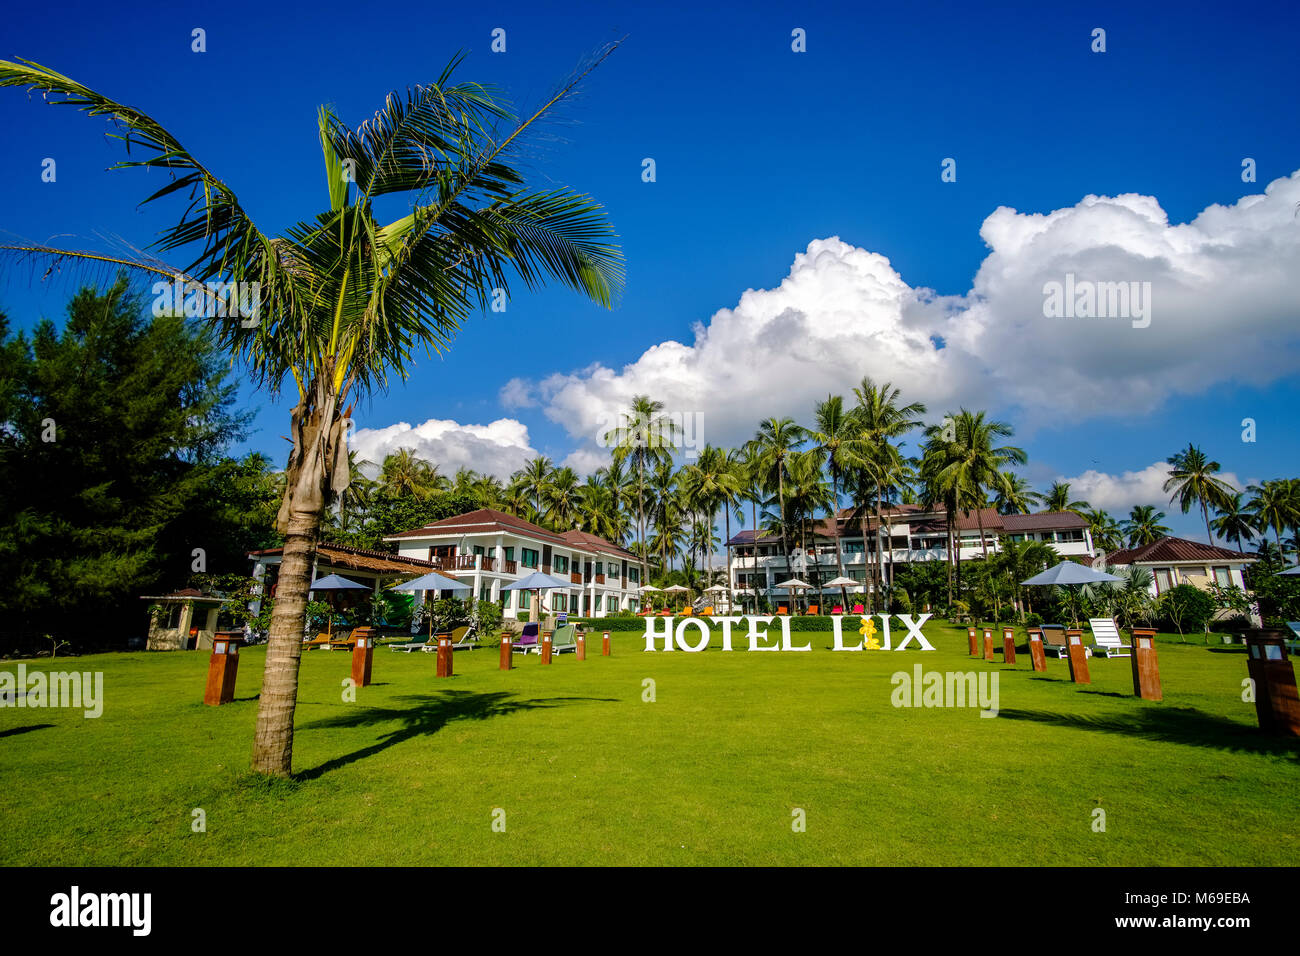 The green garden of Hotel Lux with palm trees is located close to ...